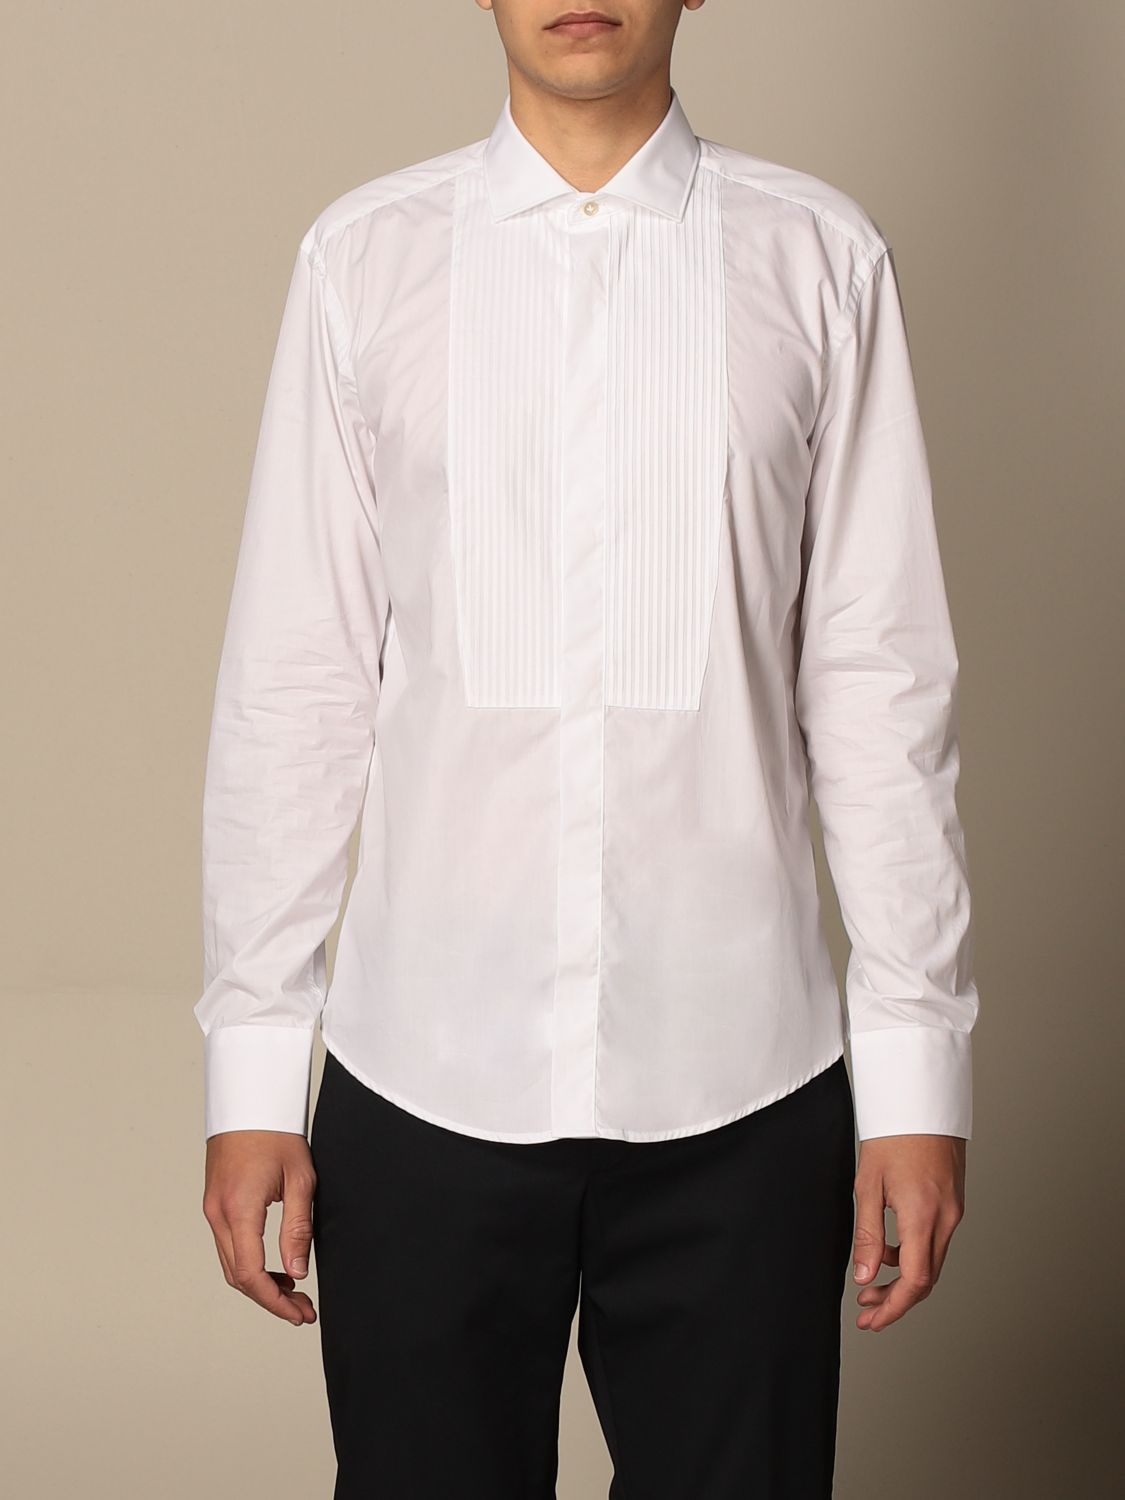 Chemise Brian Dales Chemises: Chemise homme Brian Dales Camicie blanc 1